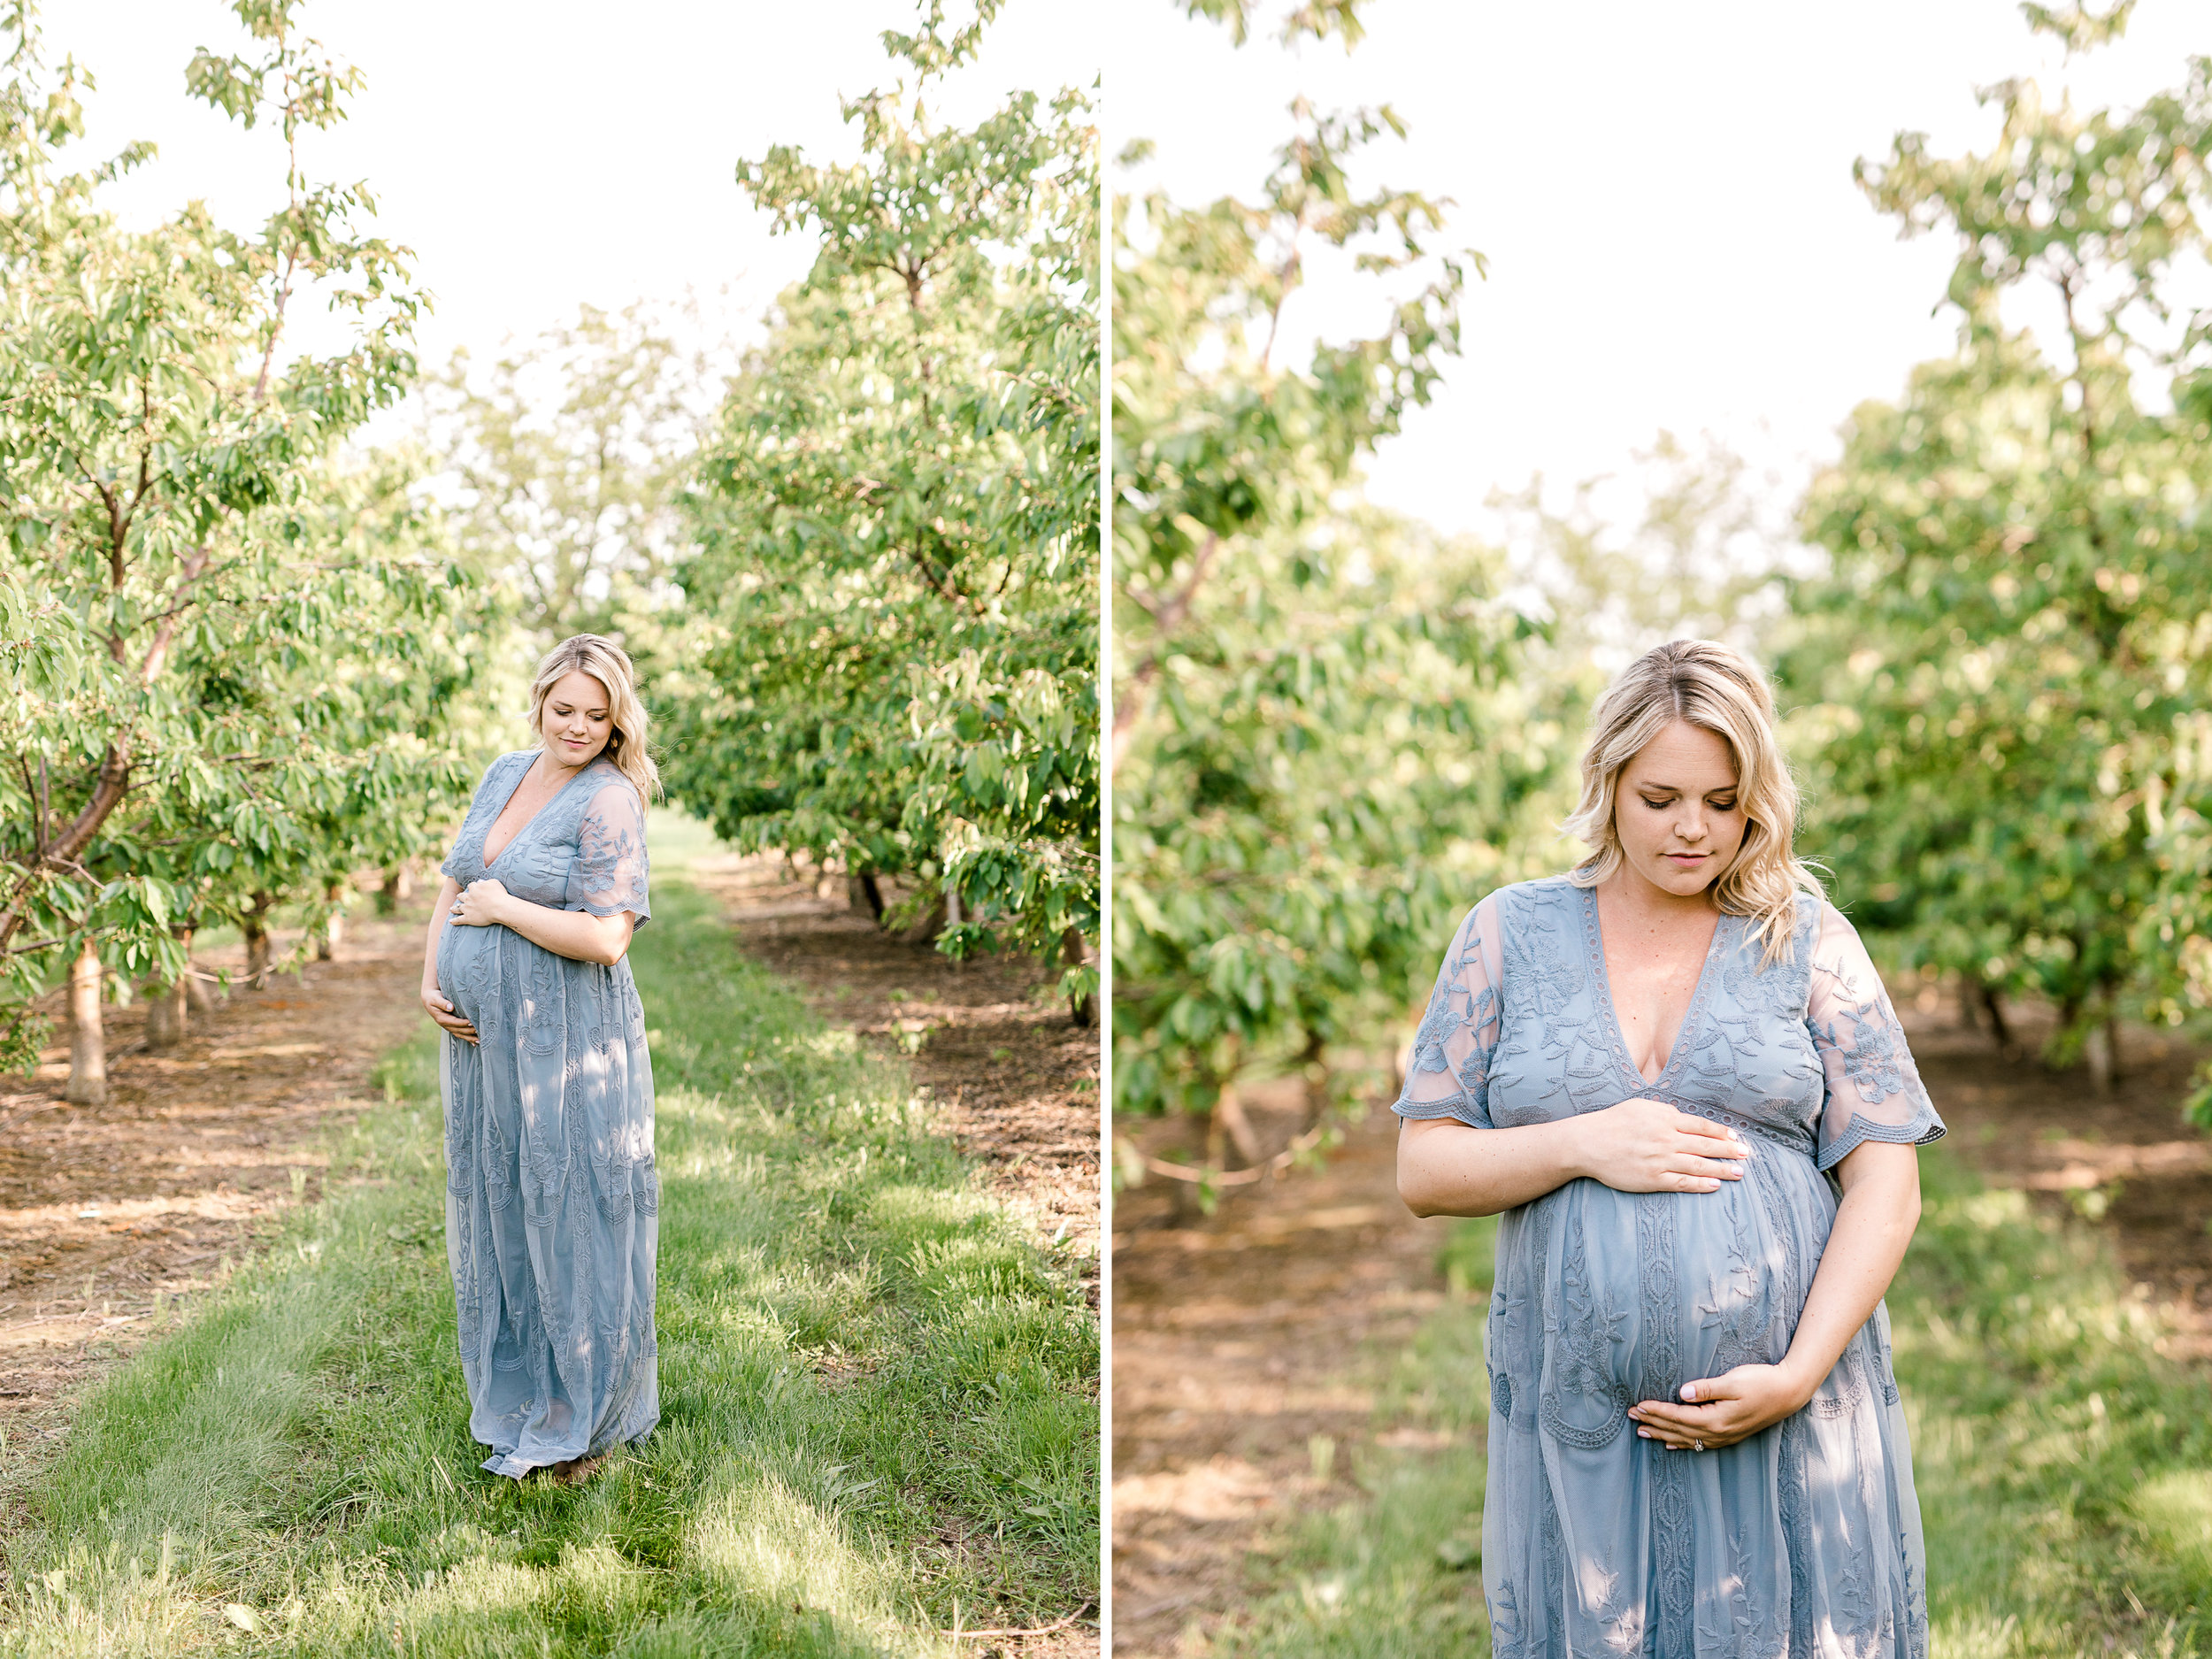 Golden Hour Maternity Session at the Orchard | What to Wear to your Maternity Session | Grand Rapids Family Lifestyle Photographer